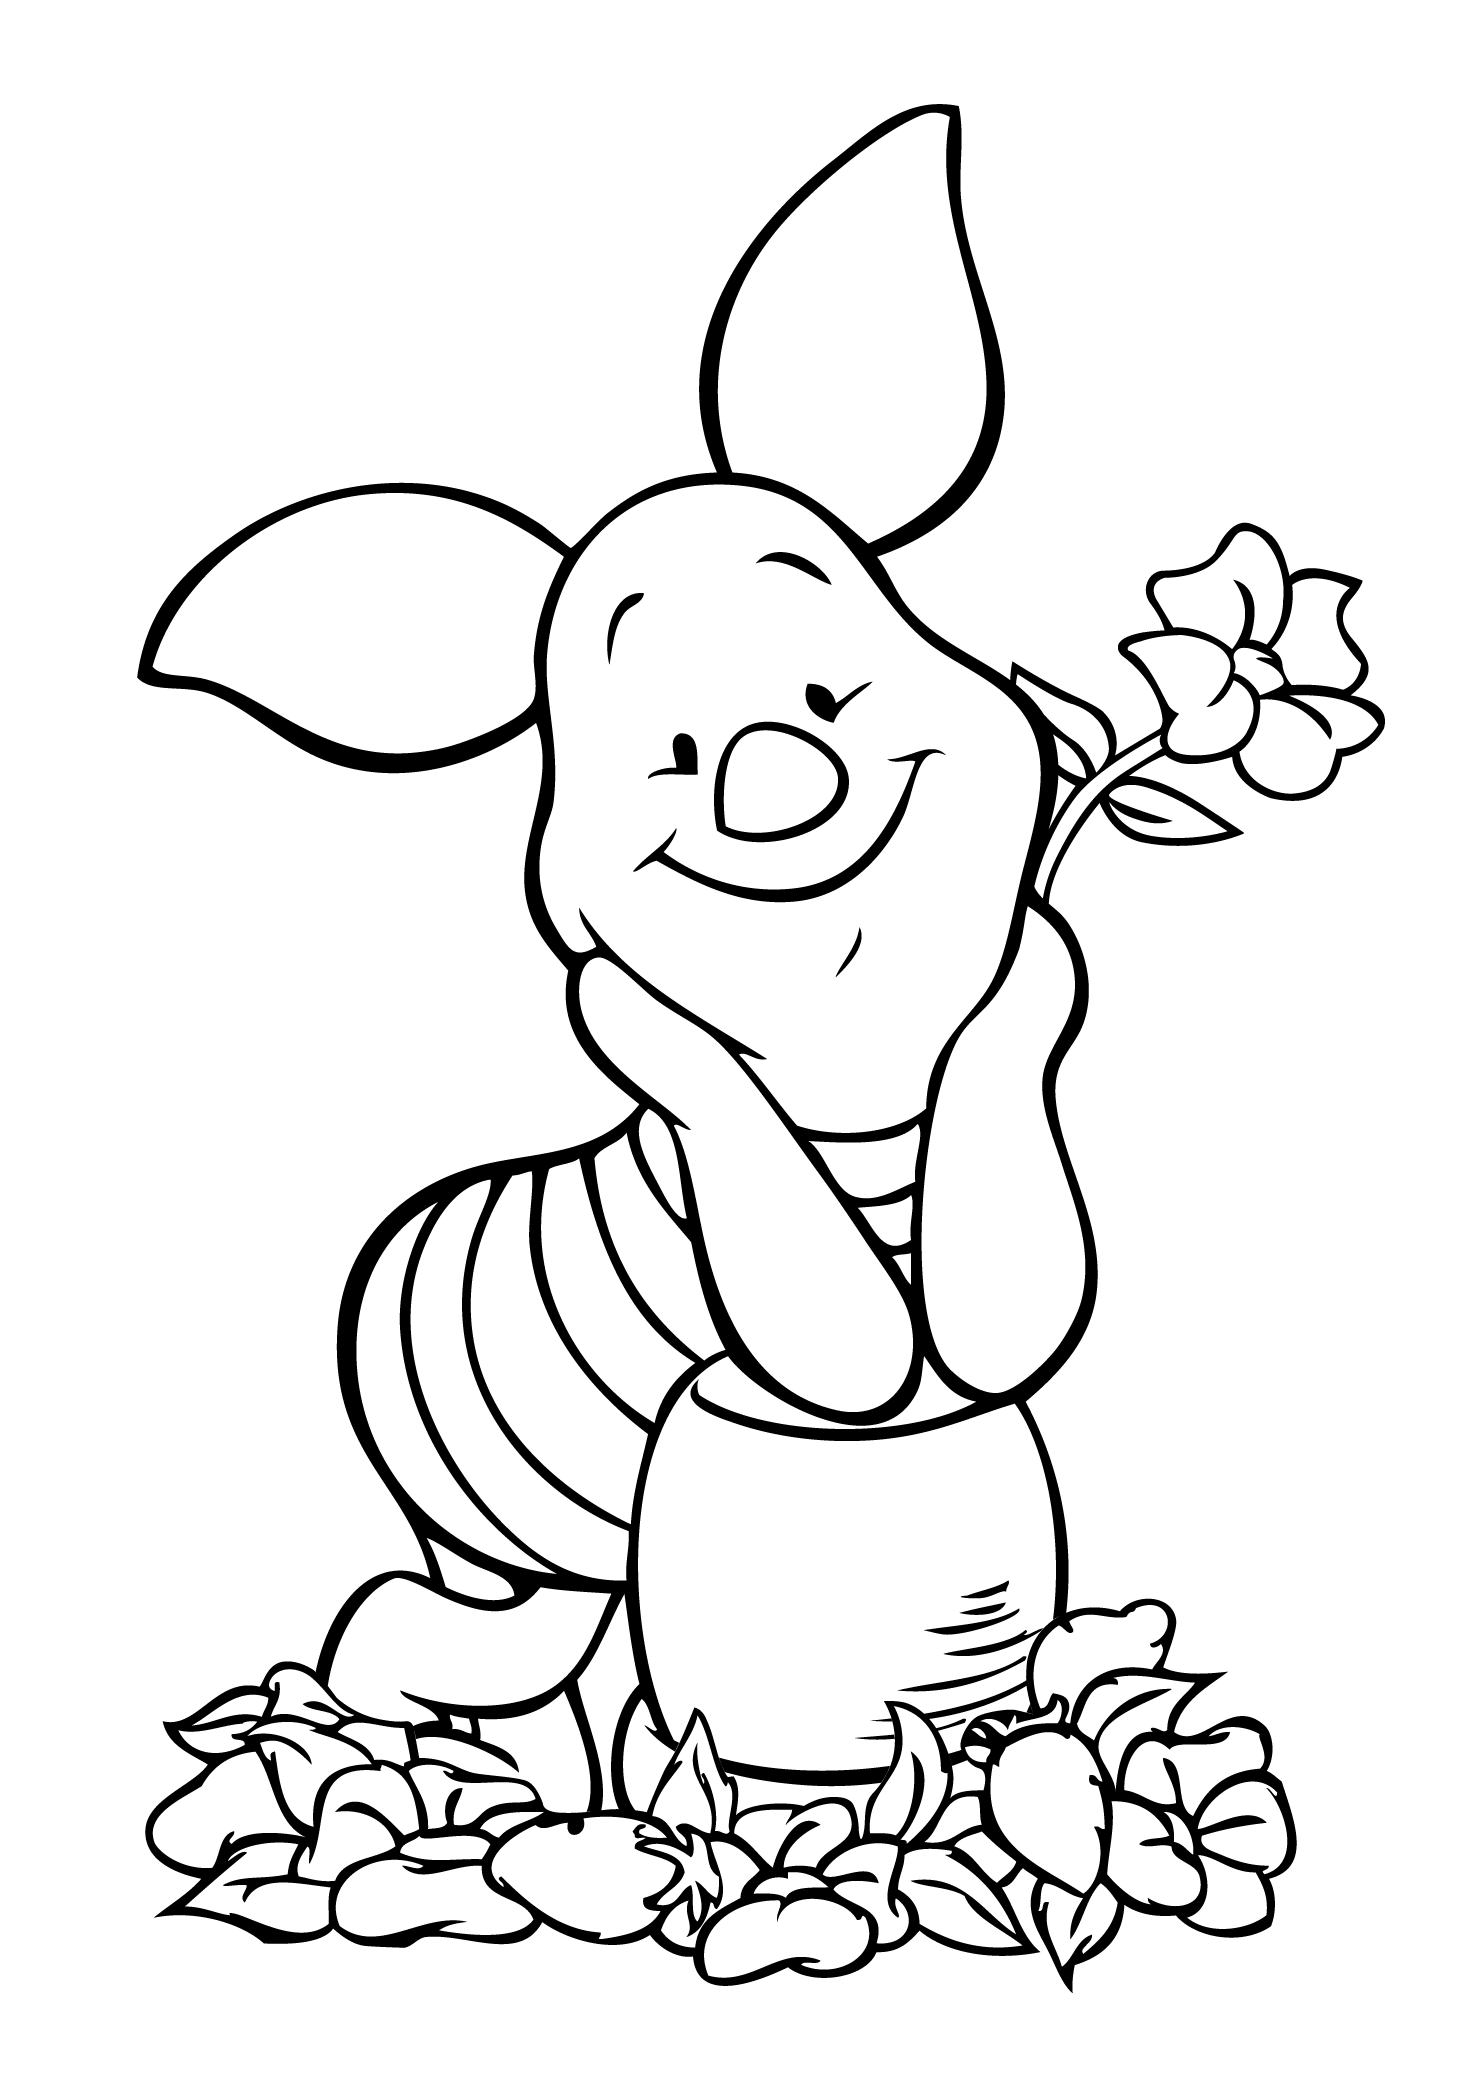 Blanket Hand Holding Coloring Pages